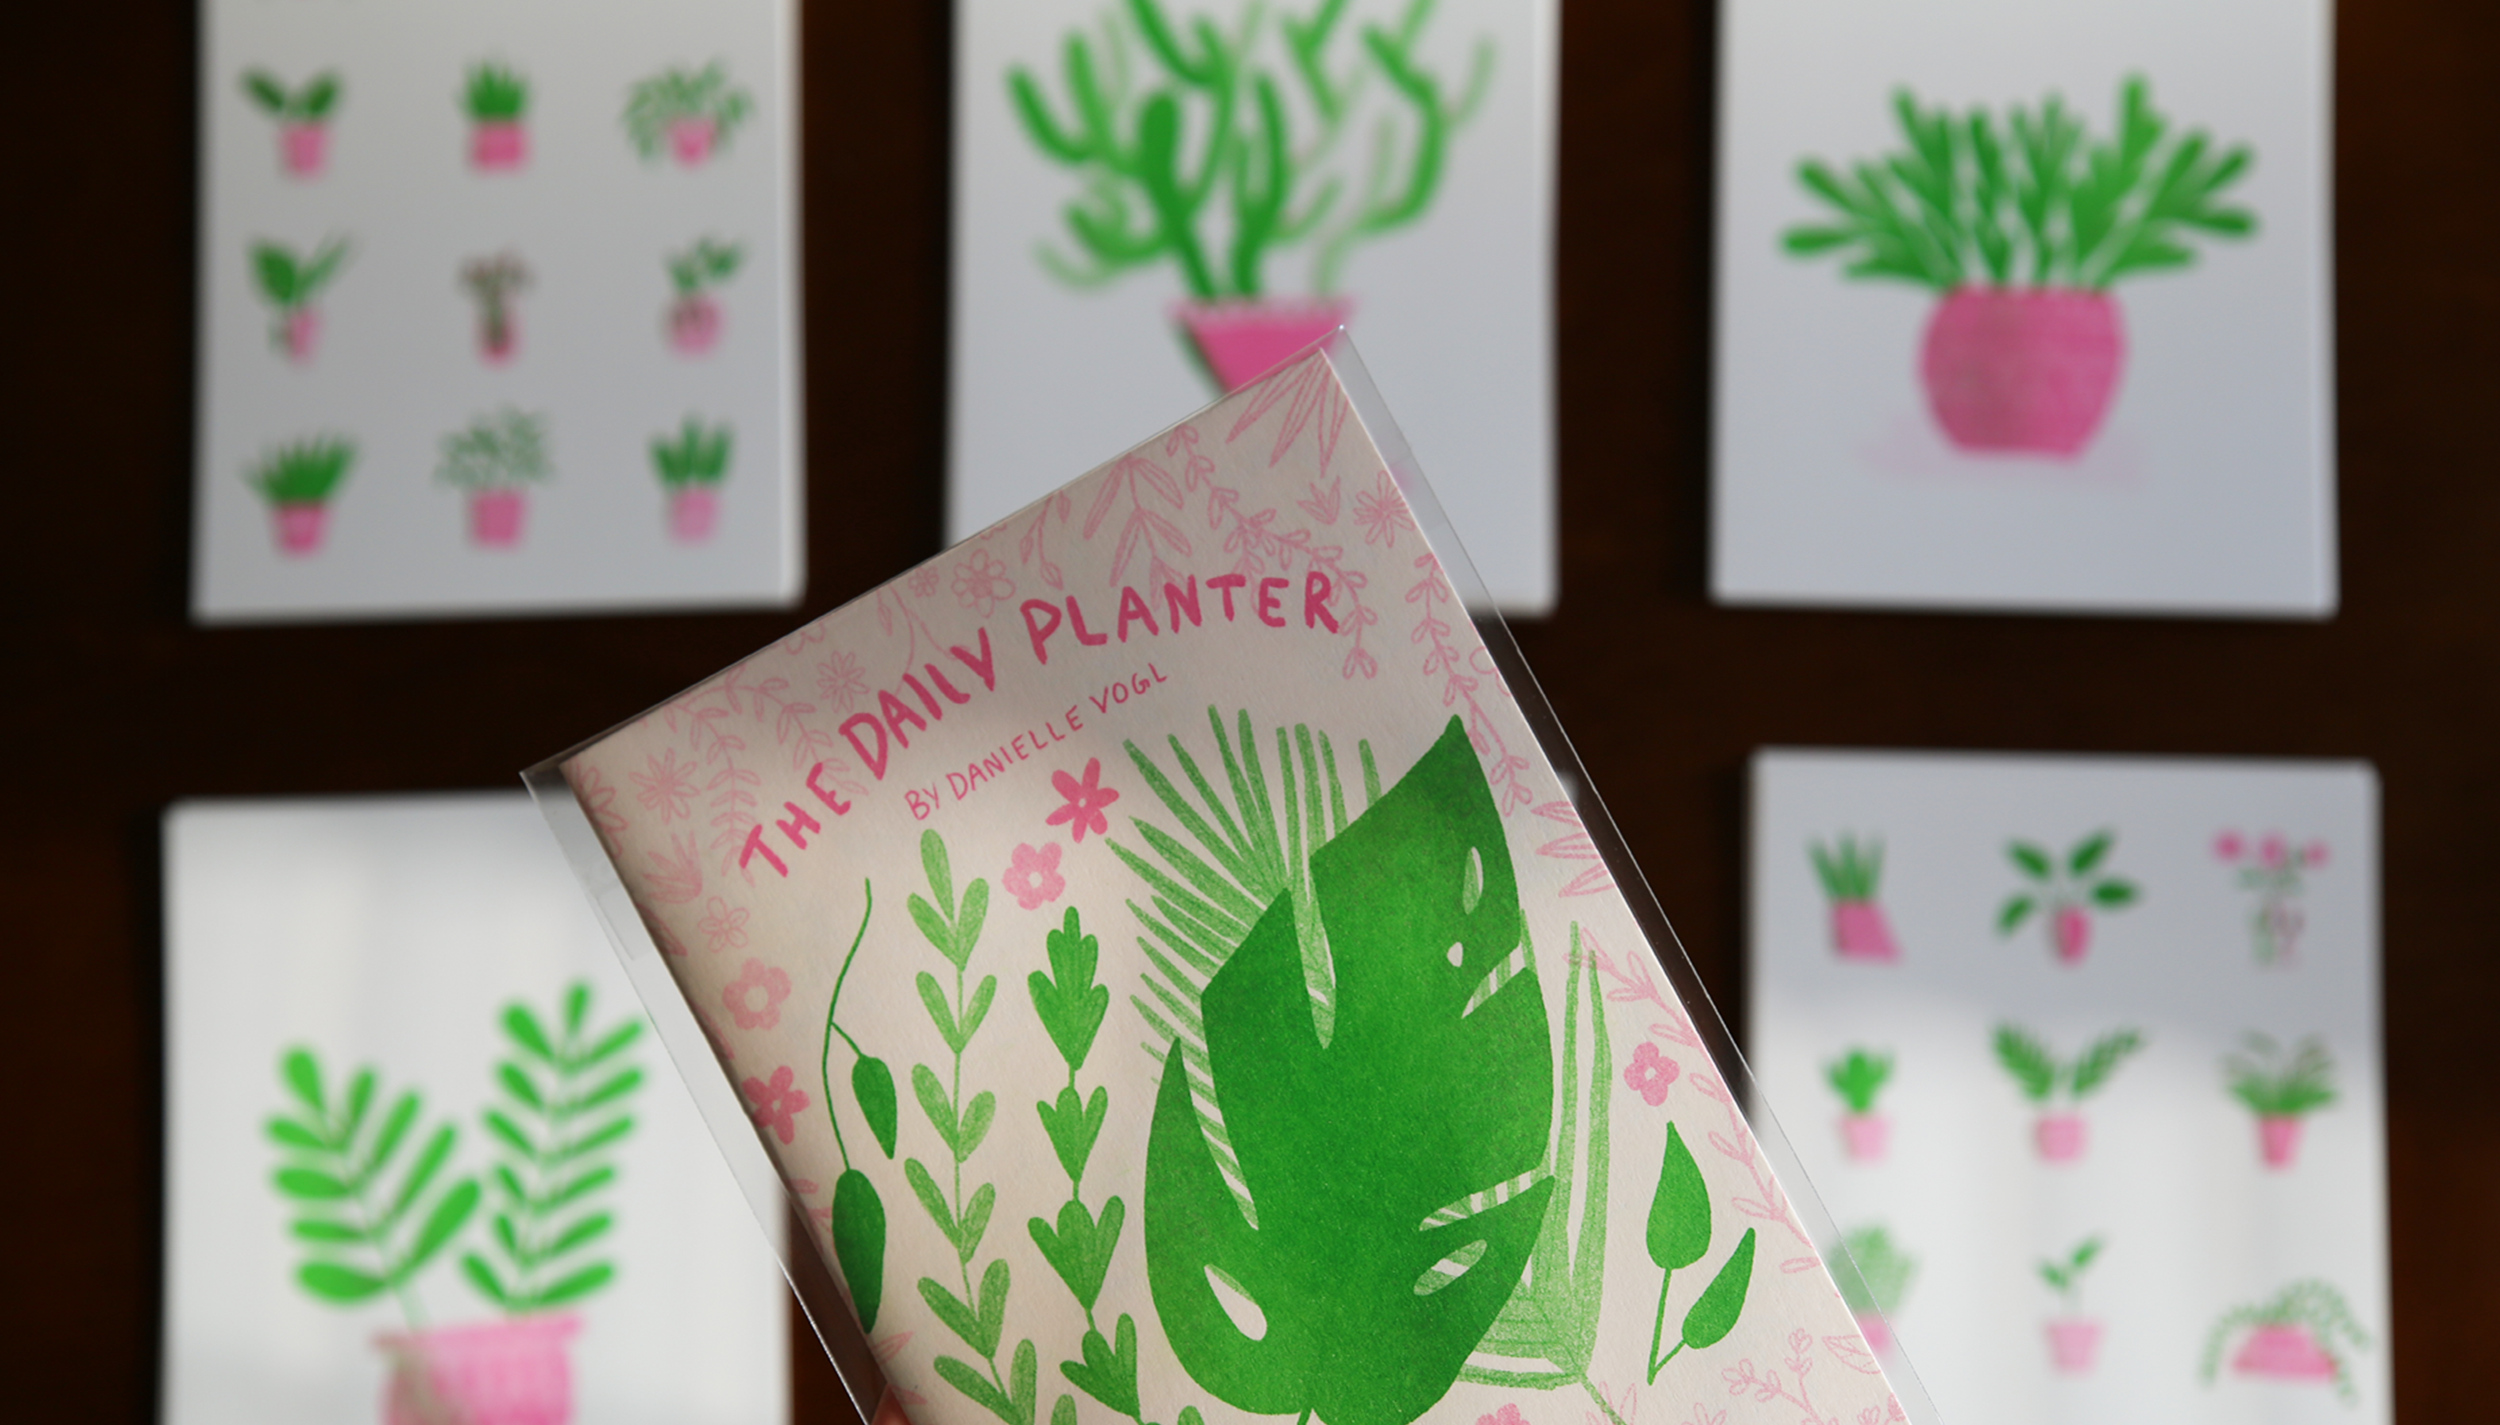 DailyPlanter_Image01.png